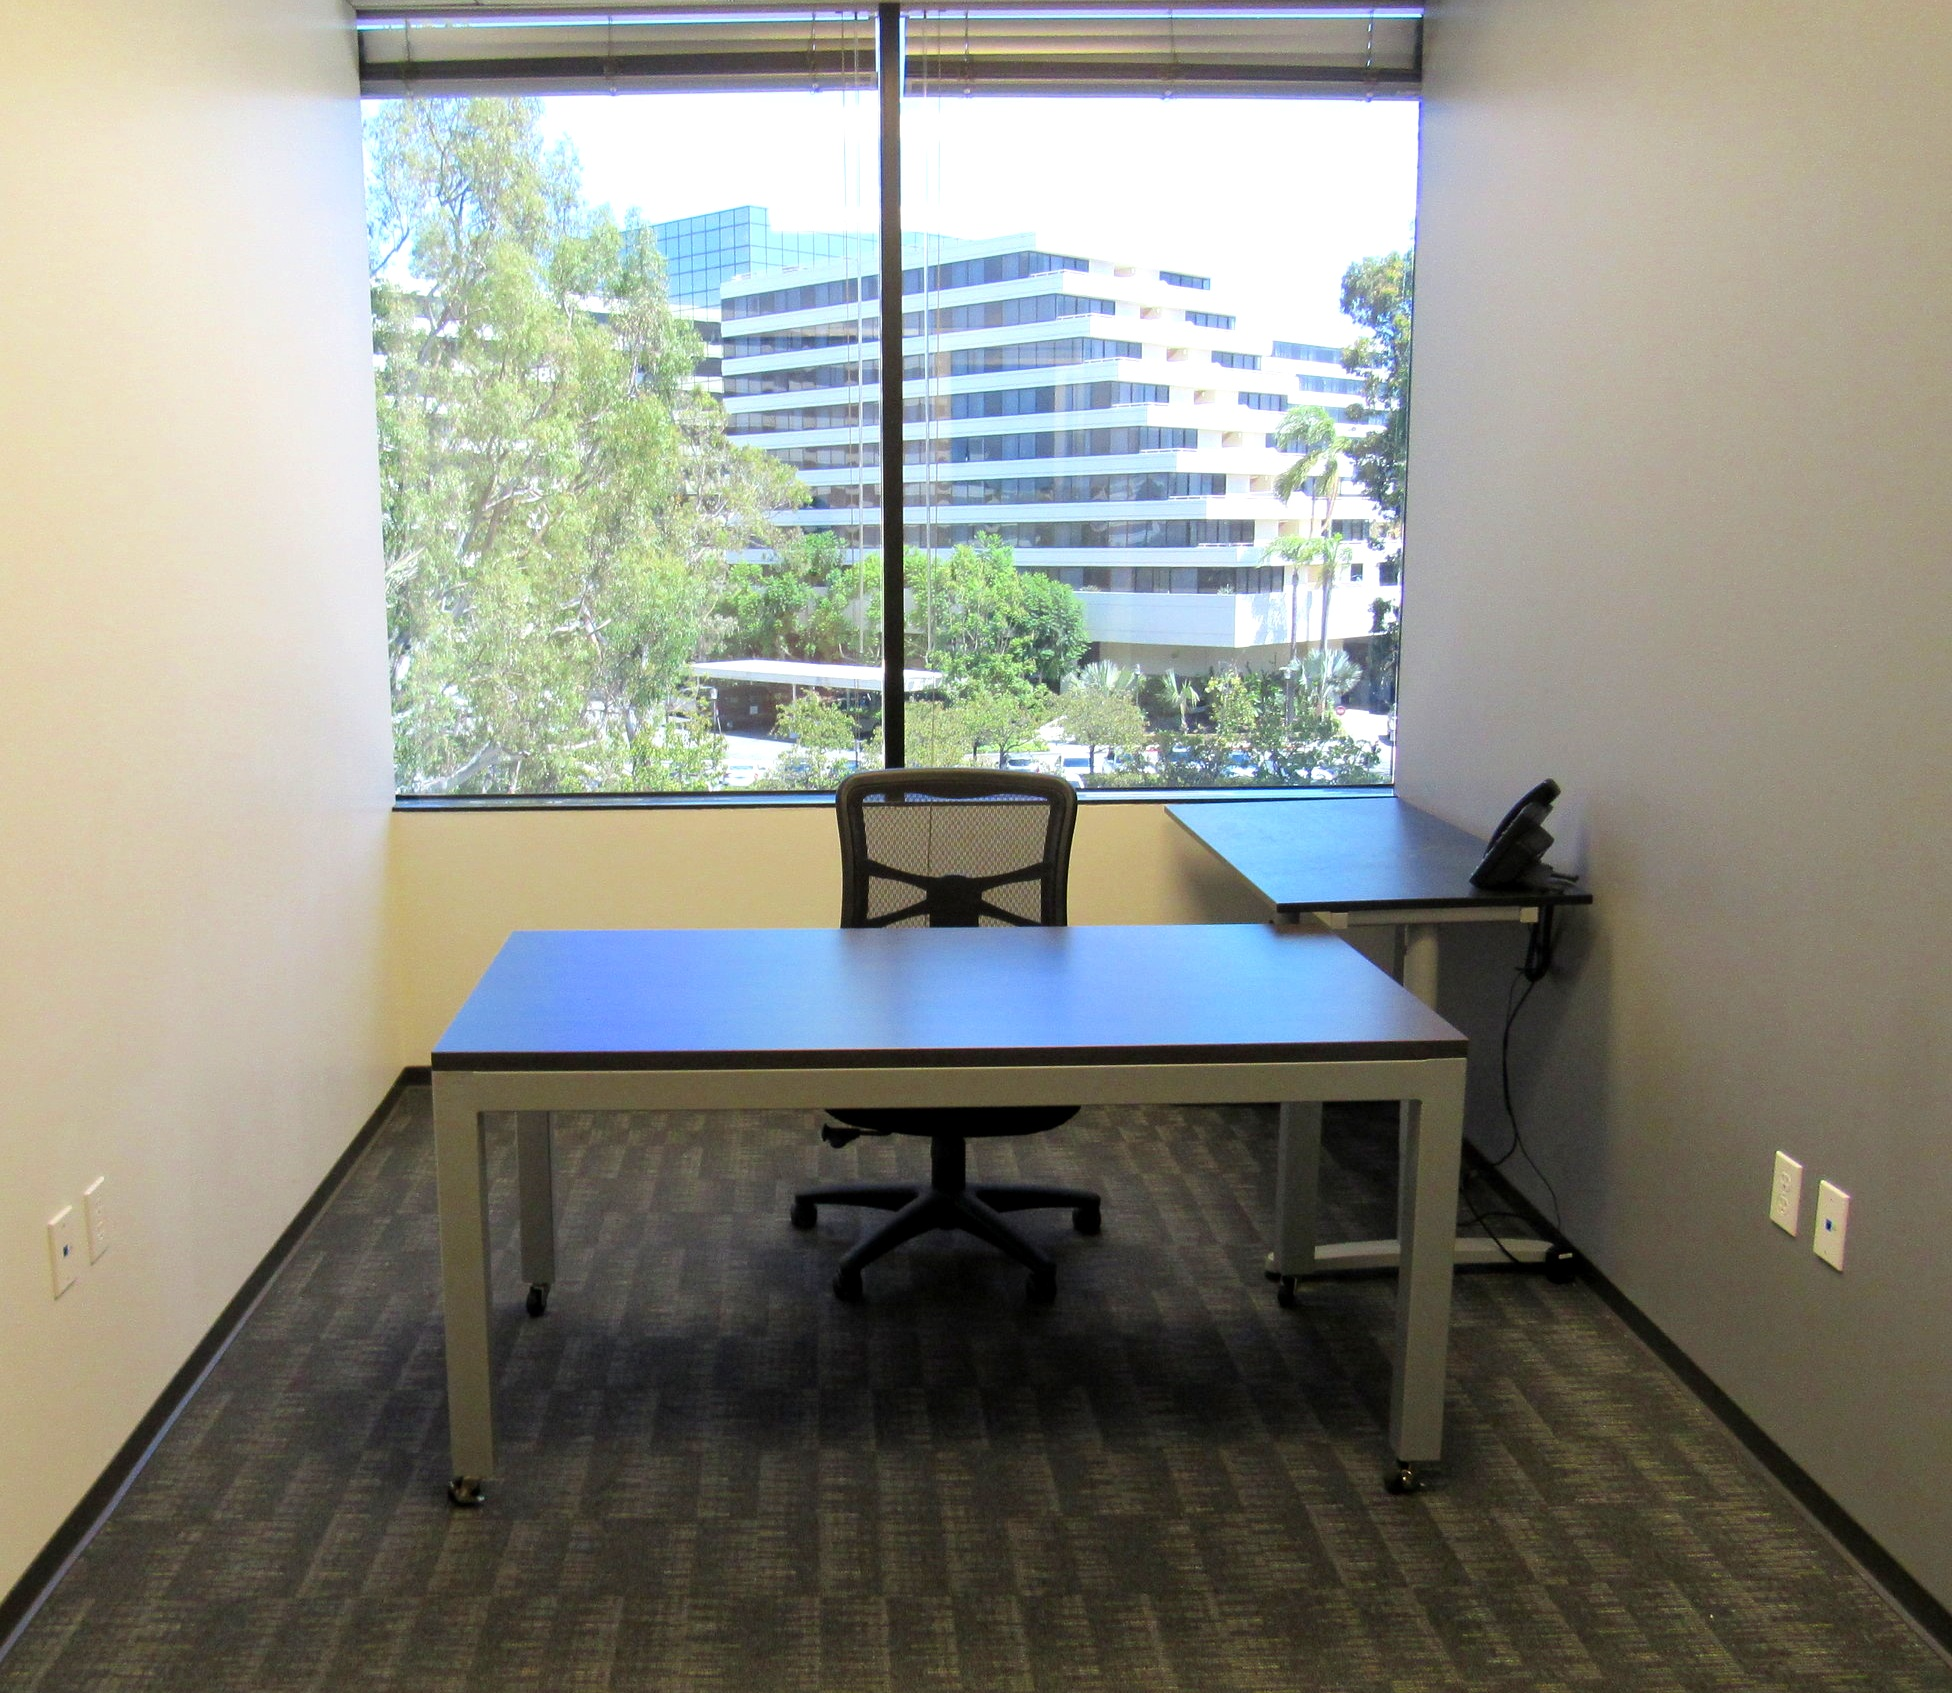 DAY USE OFFICE - Pay as you go!Choose this option if you need to rent a private office for the day, week or month!Prices start at $75/dayWifi: DUH!Coffee and all other amenities included.